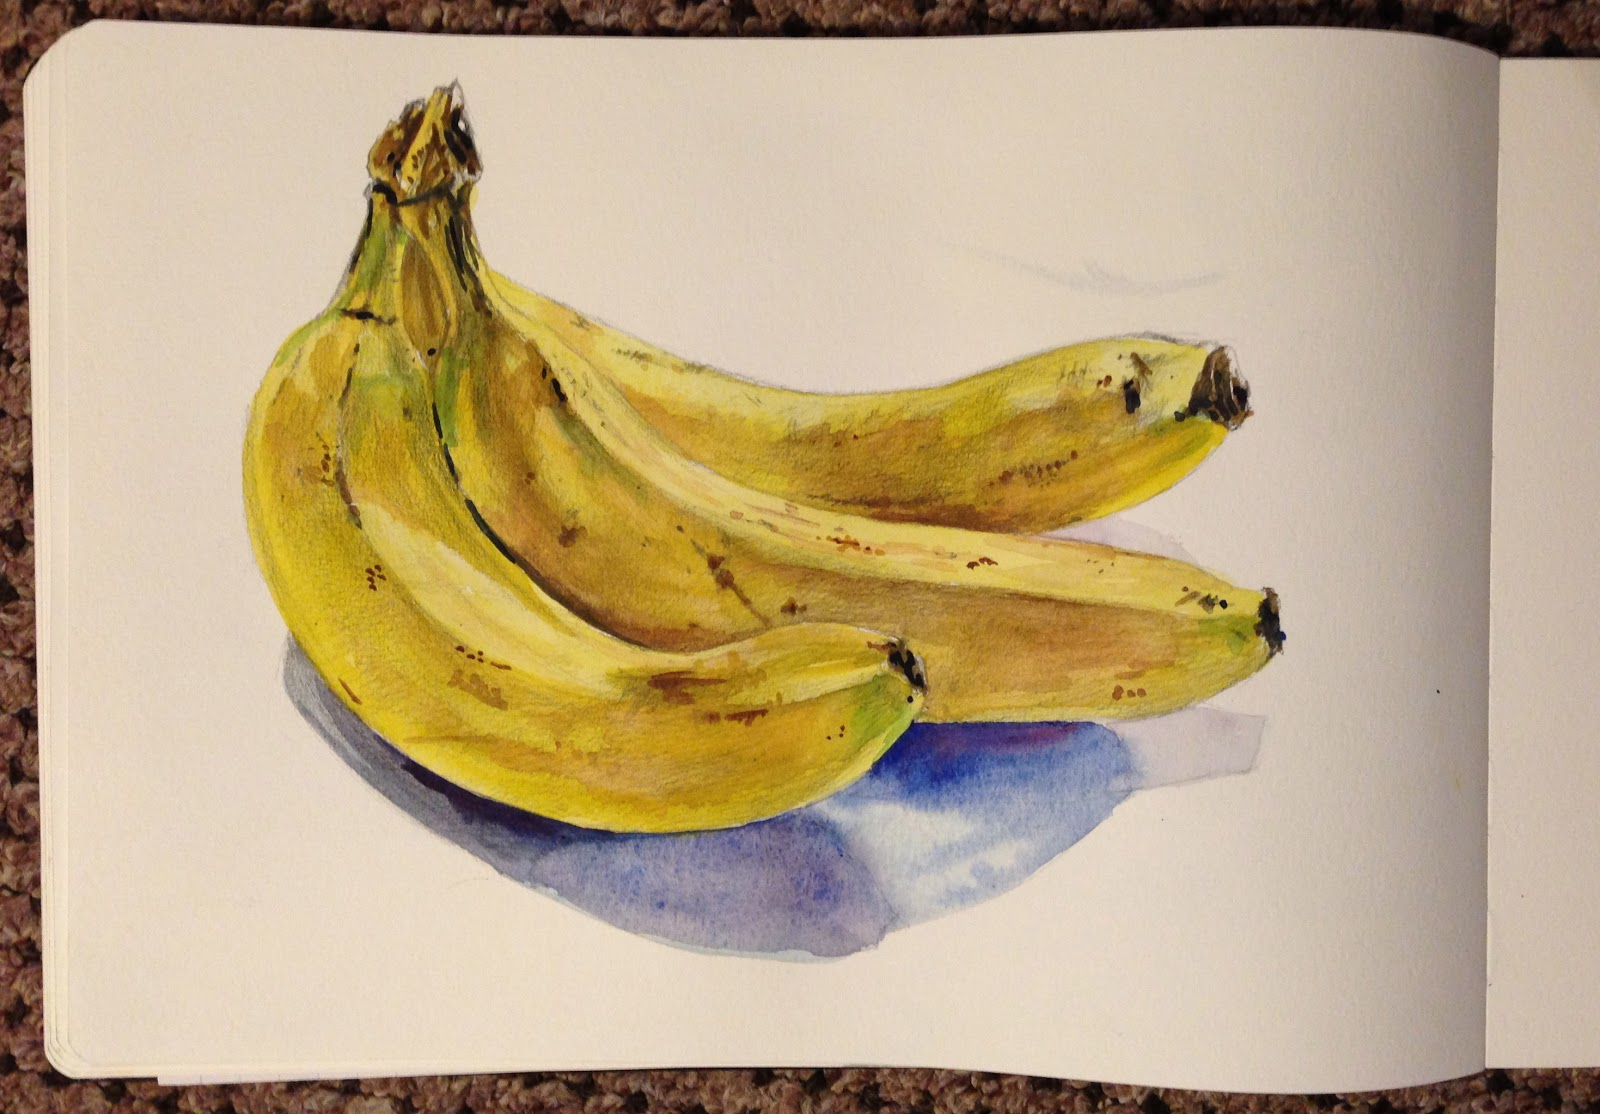 Bunch Of Bananas Water Colour And Pencil Moleskine Sketch Book Julie Douglas